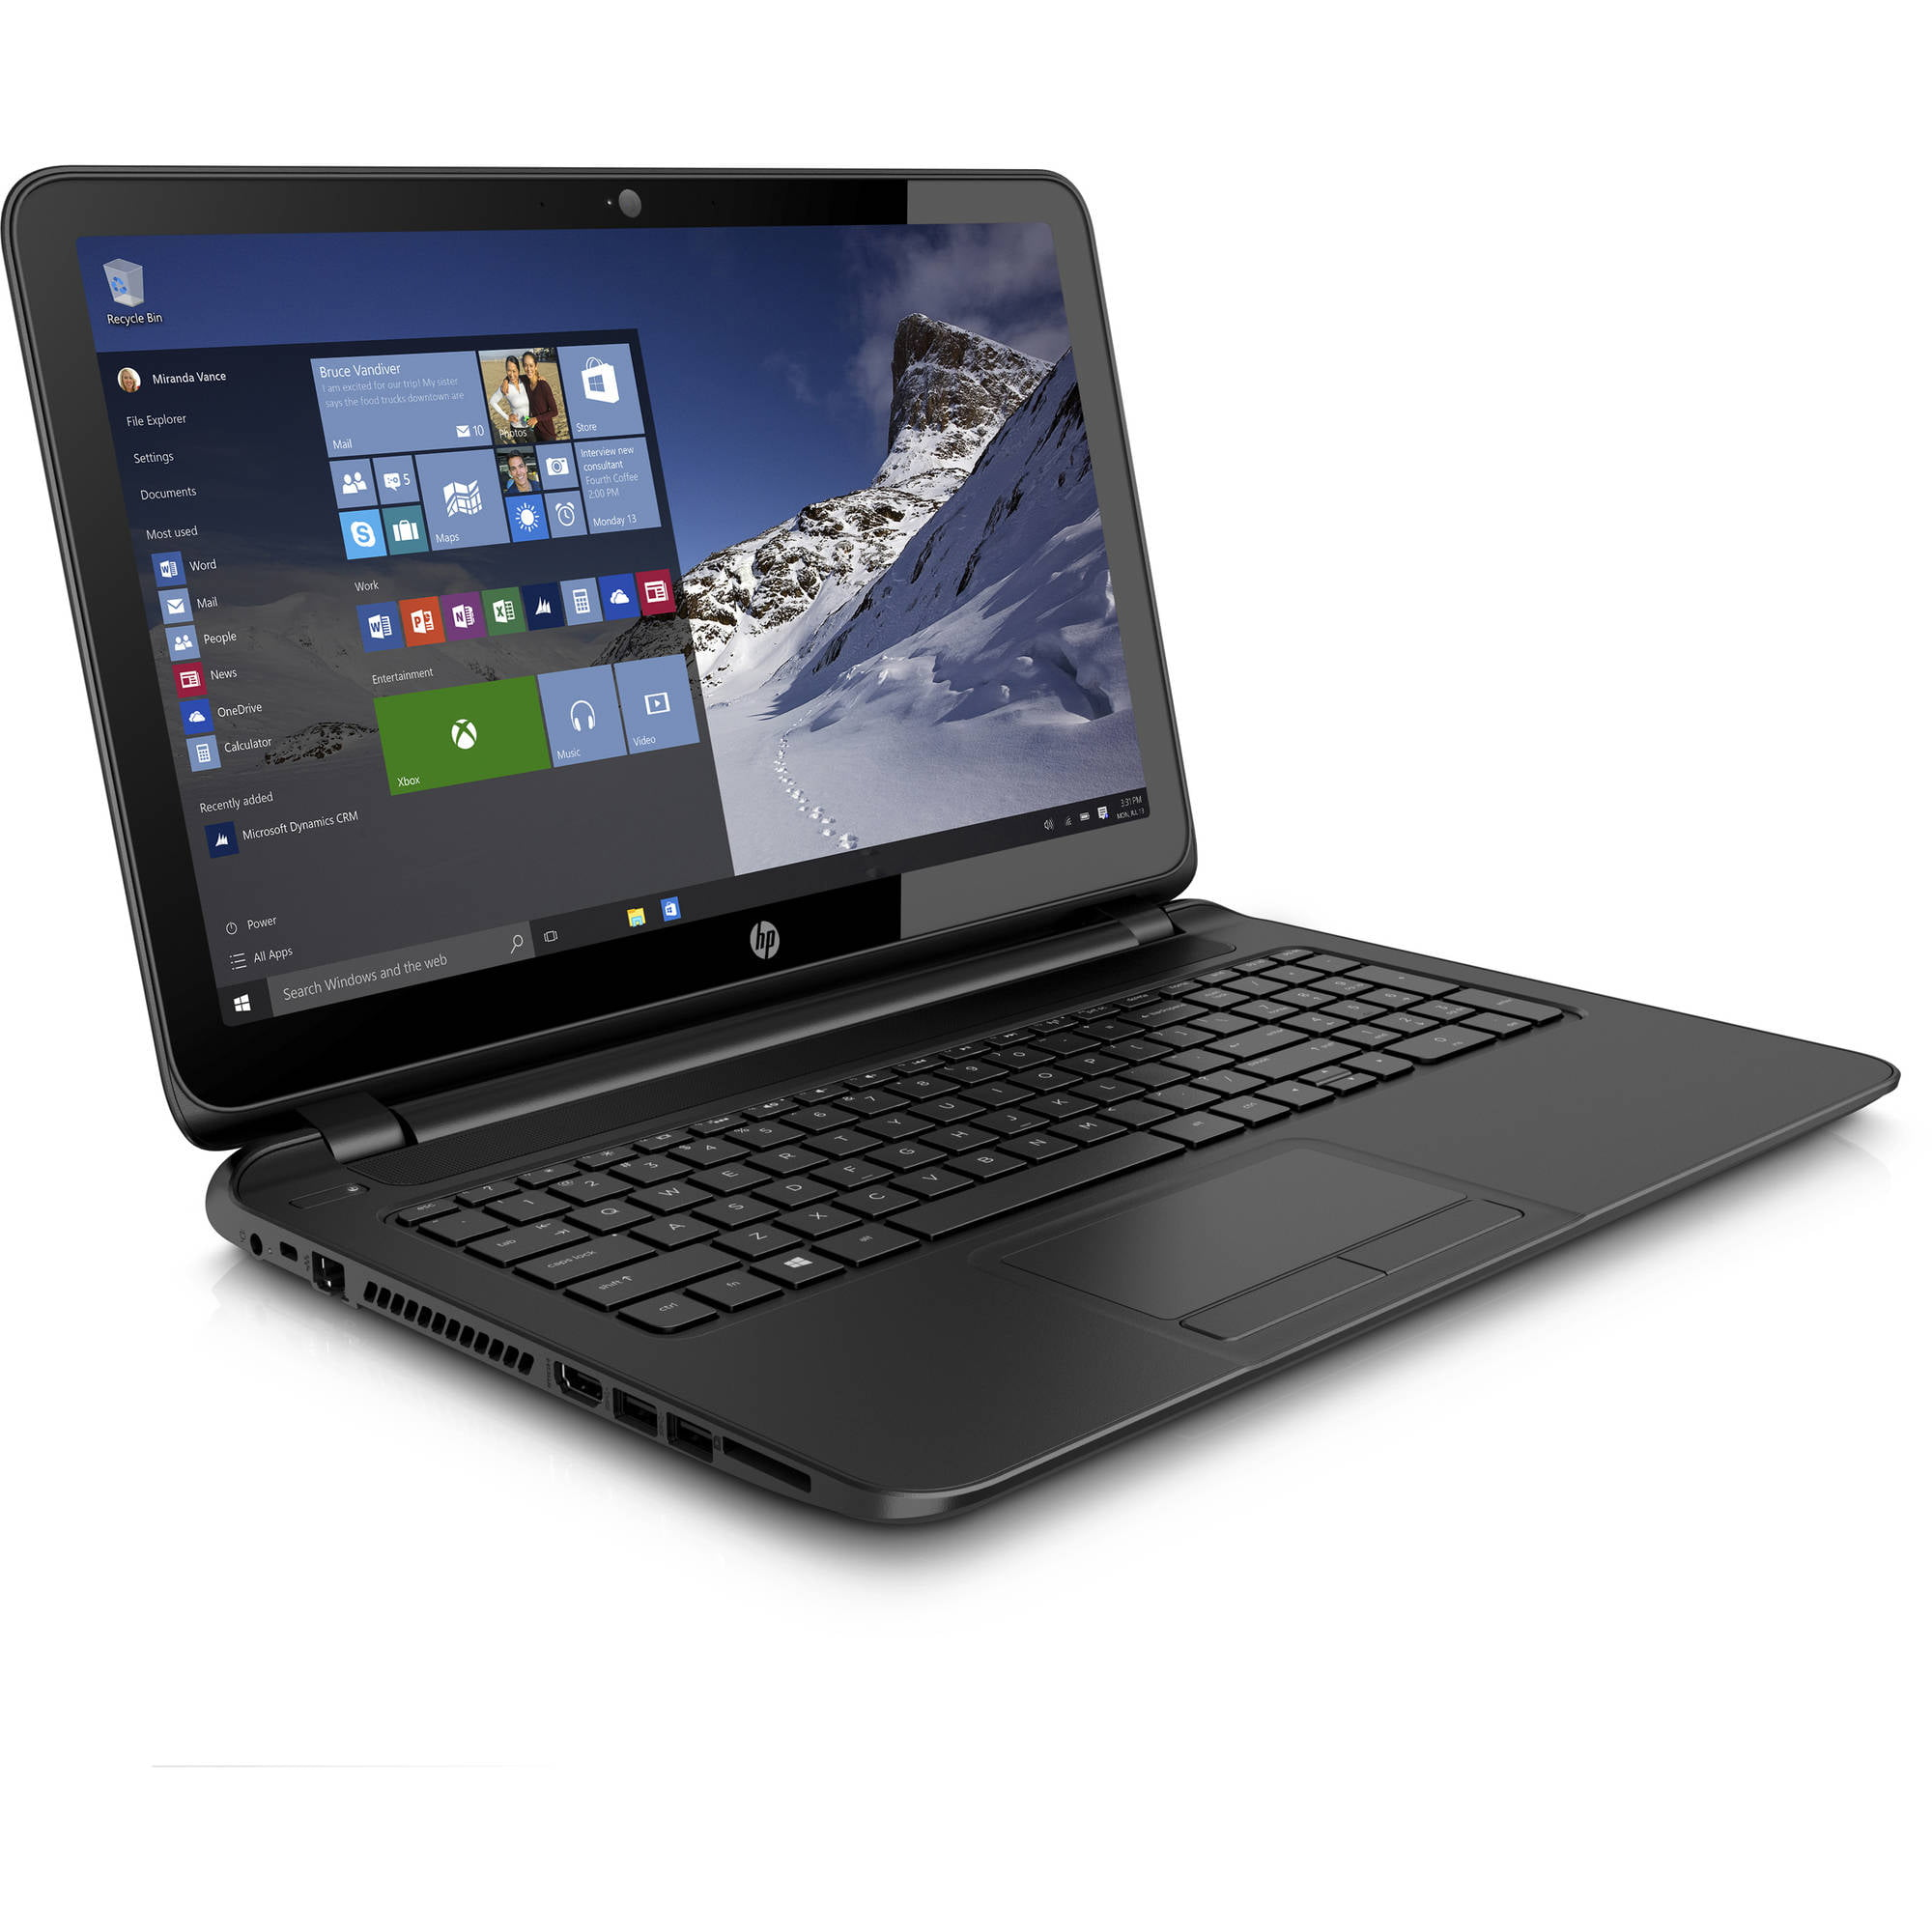 HP G62-110EE Notebook AMD HD Display Driver for Windows 10